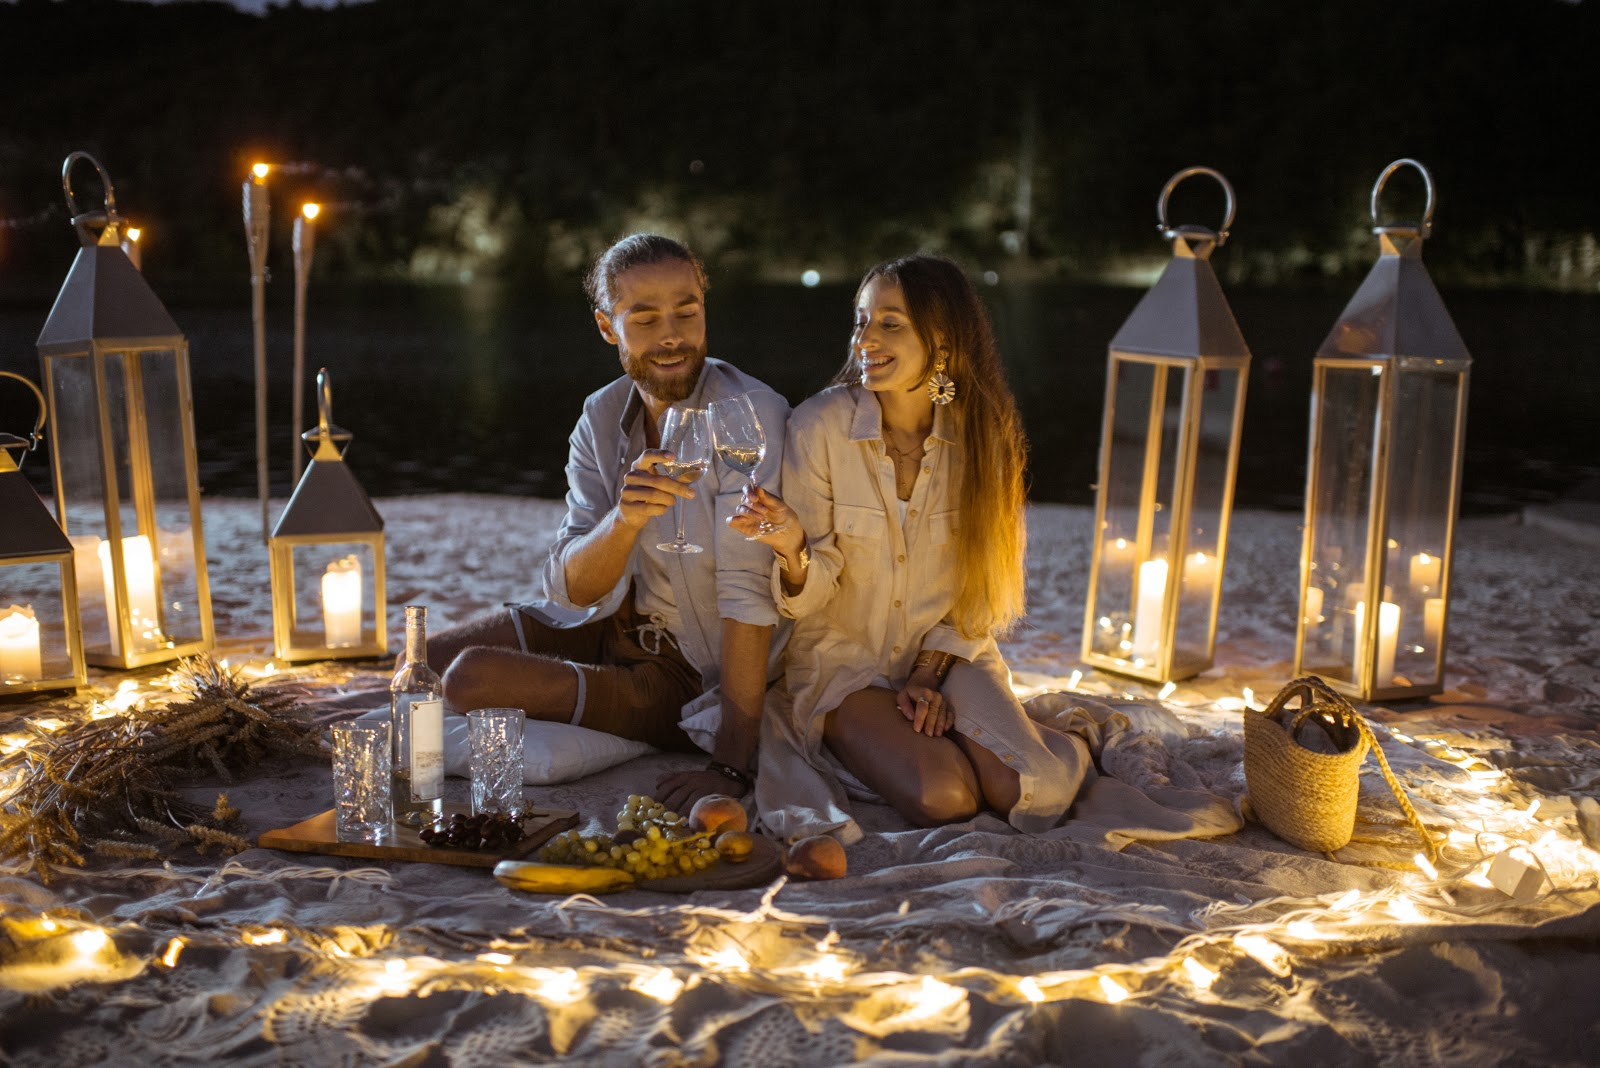 Couple-Having-A-Romantic-Dinner-on-the-beach-with-lighting